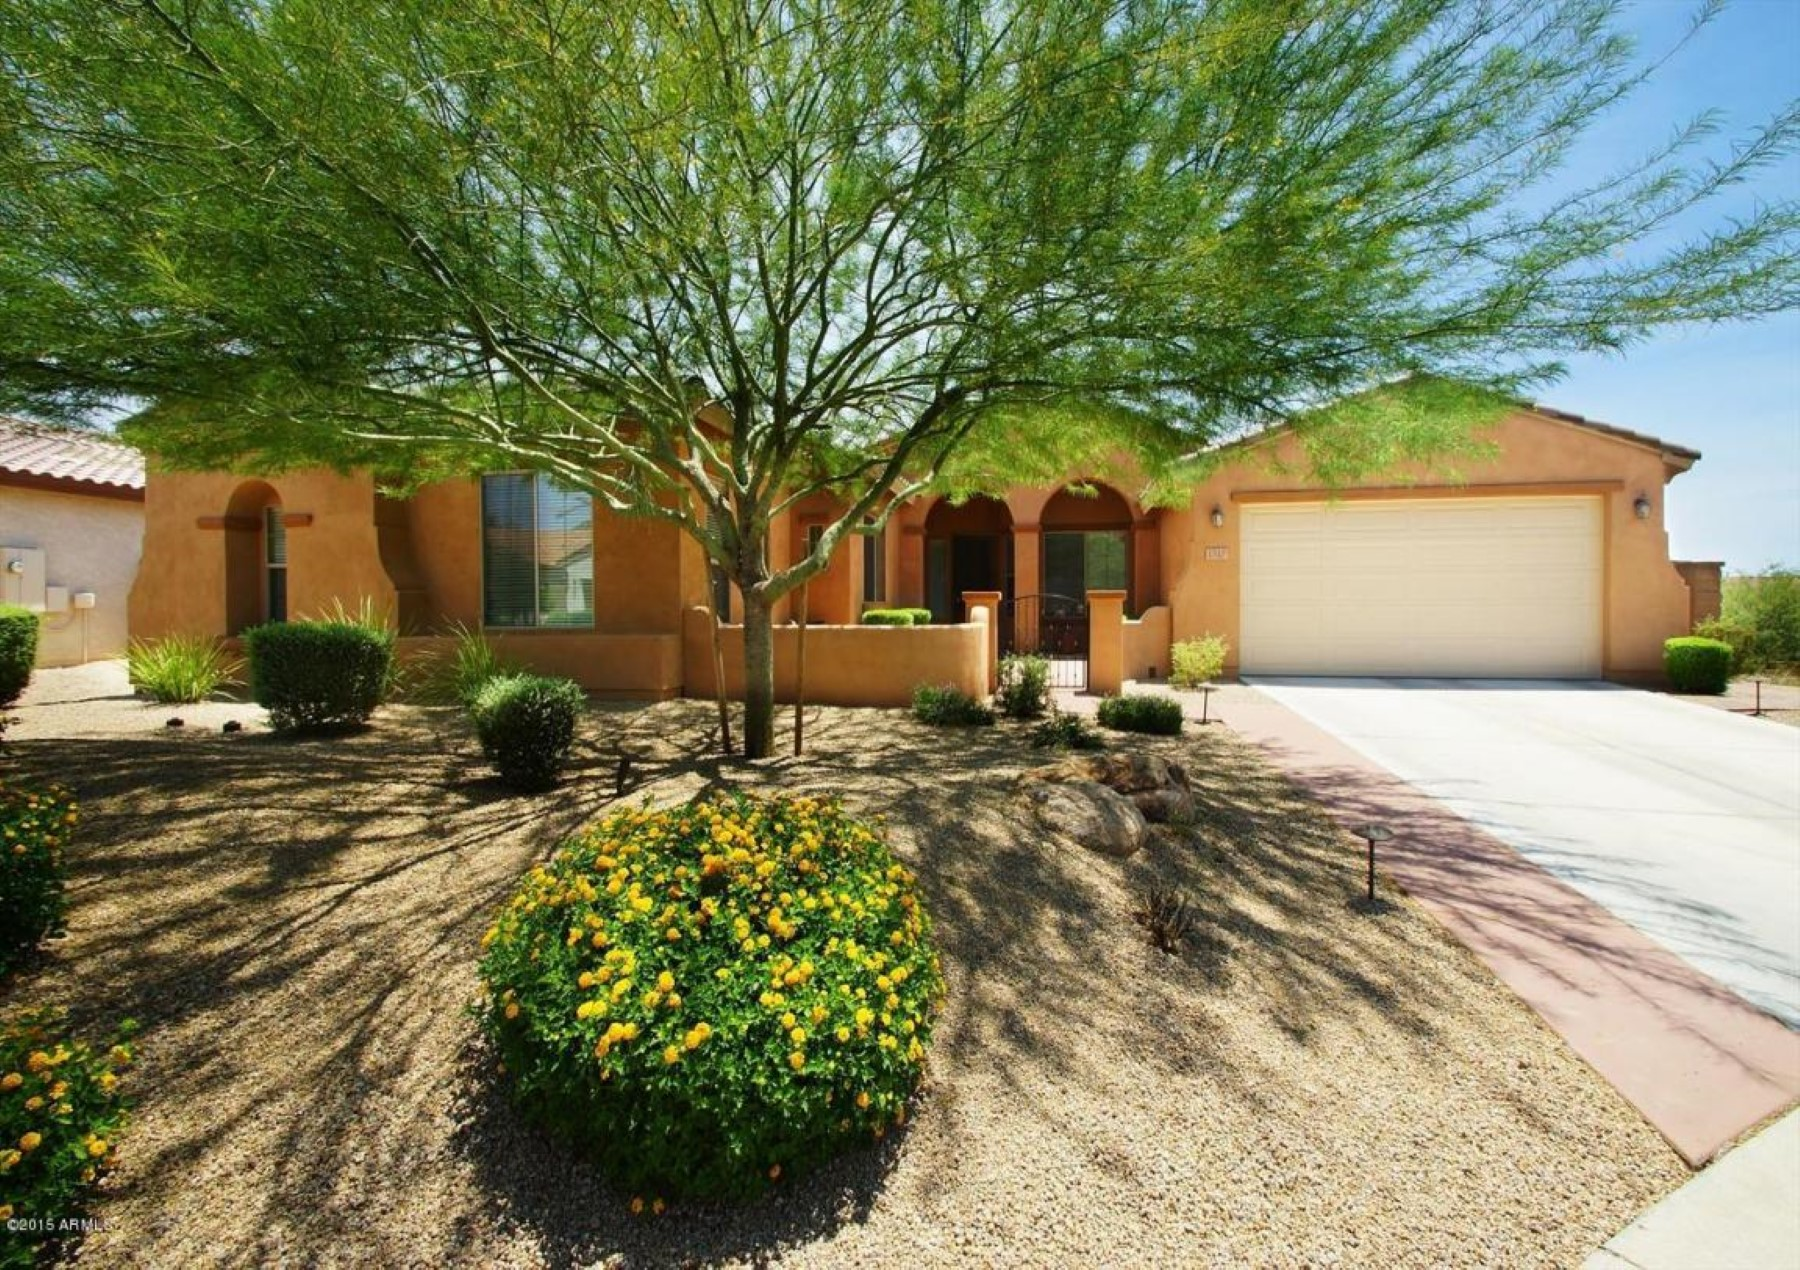 一戸建て のために 売買 アット Home is situated in an exclusive gated community within Sonoran Foothills. 1517 W BRAMBLE BERRY LN Phoenix, アリゾナ 85085 アメリカ合衆国